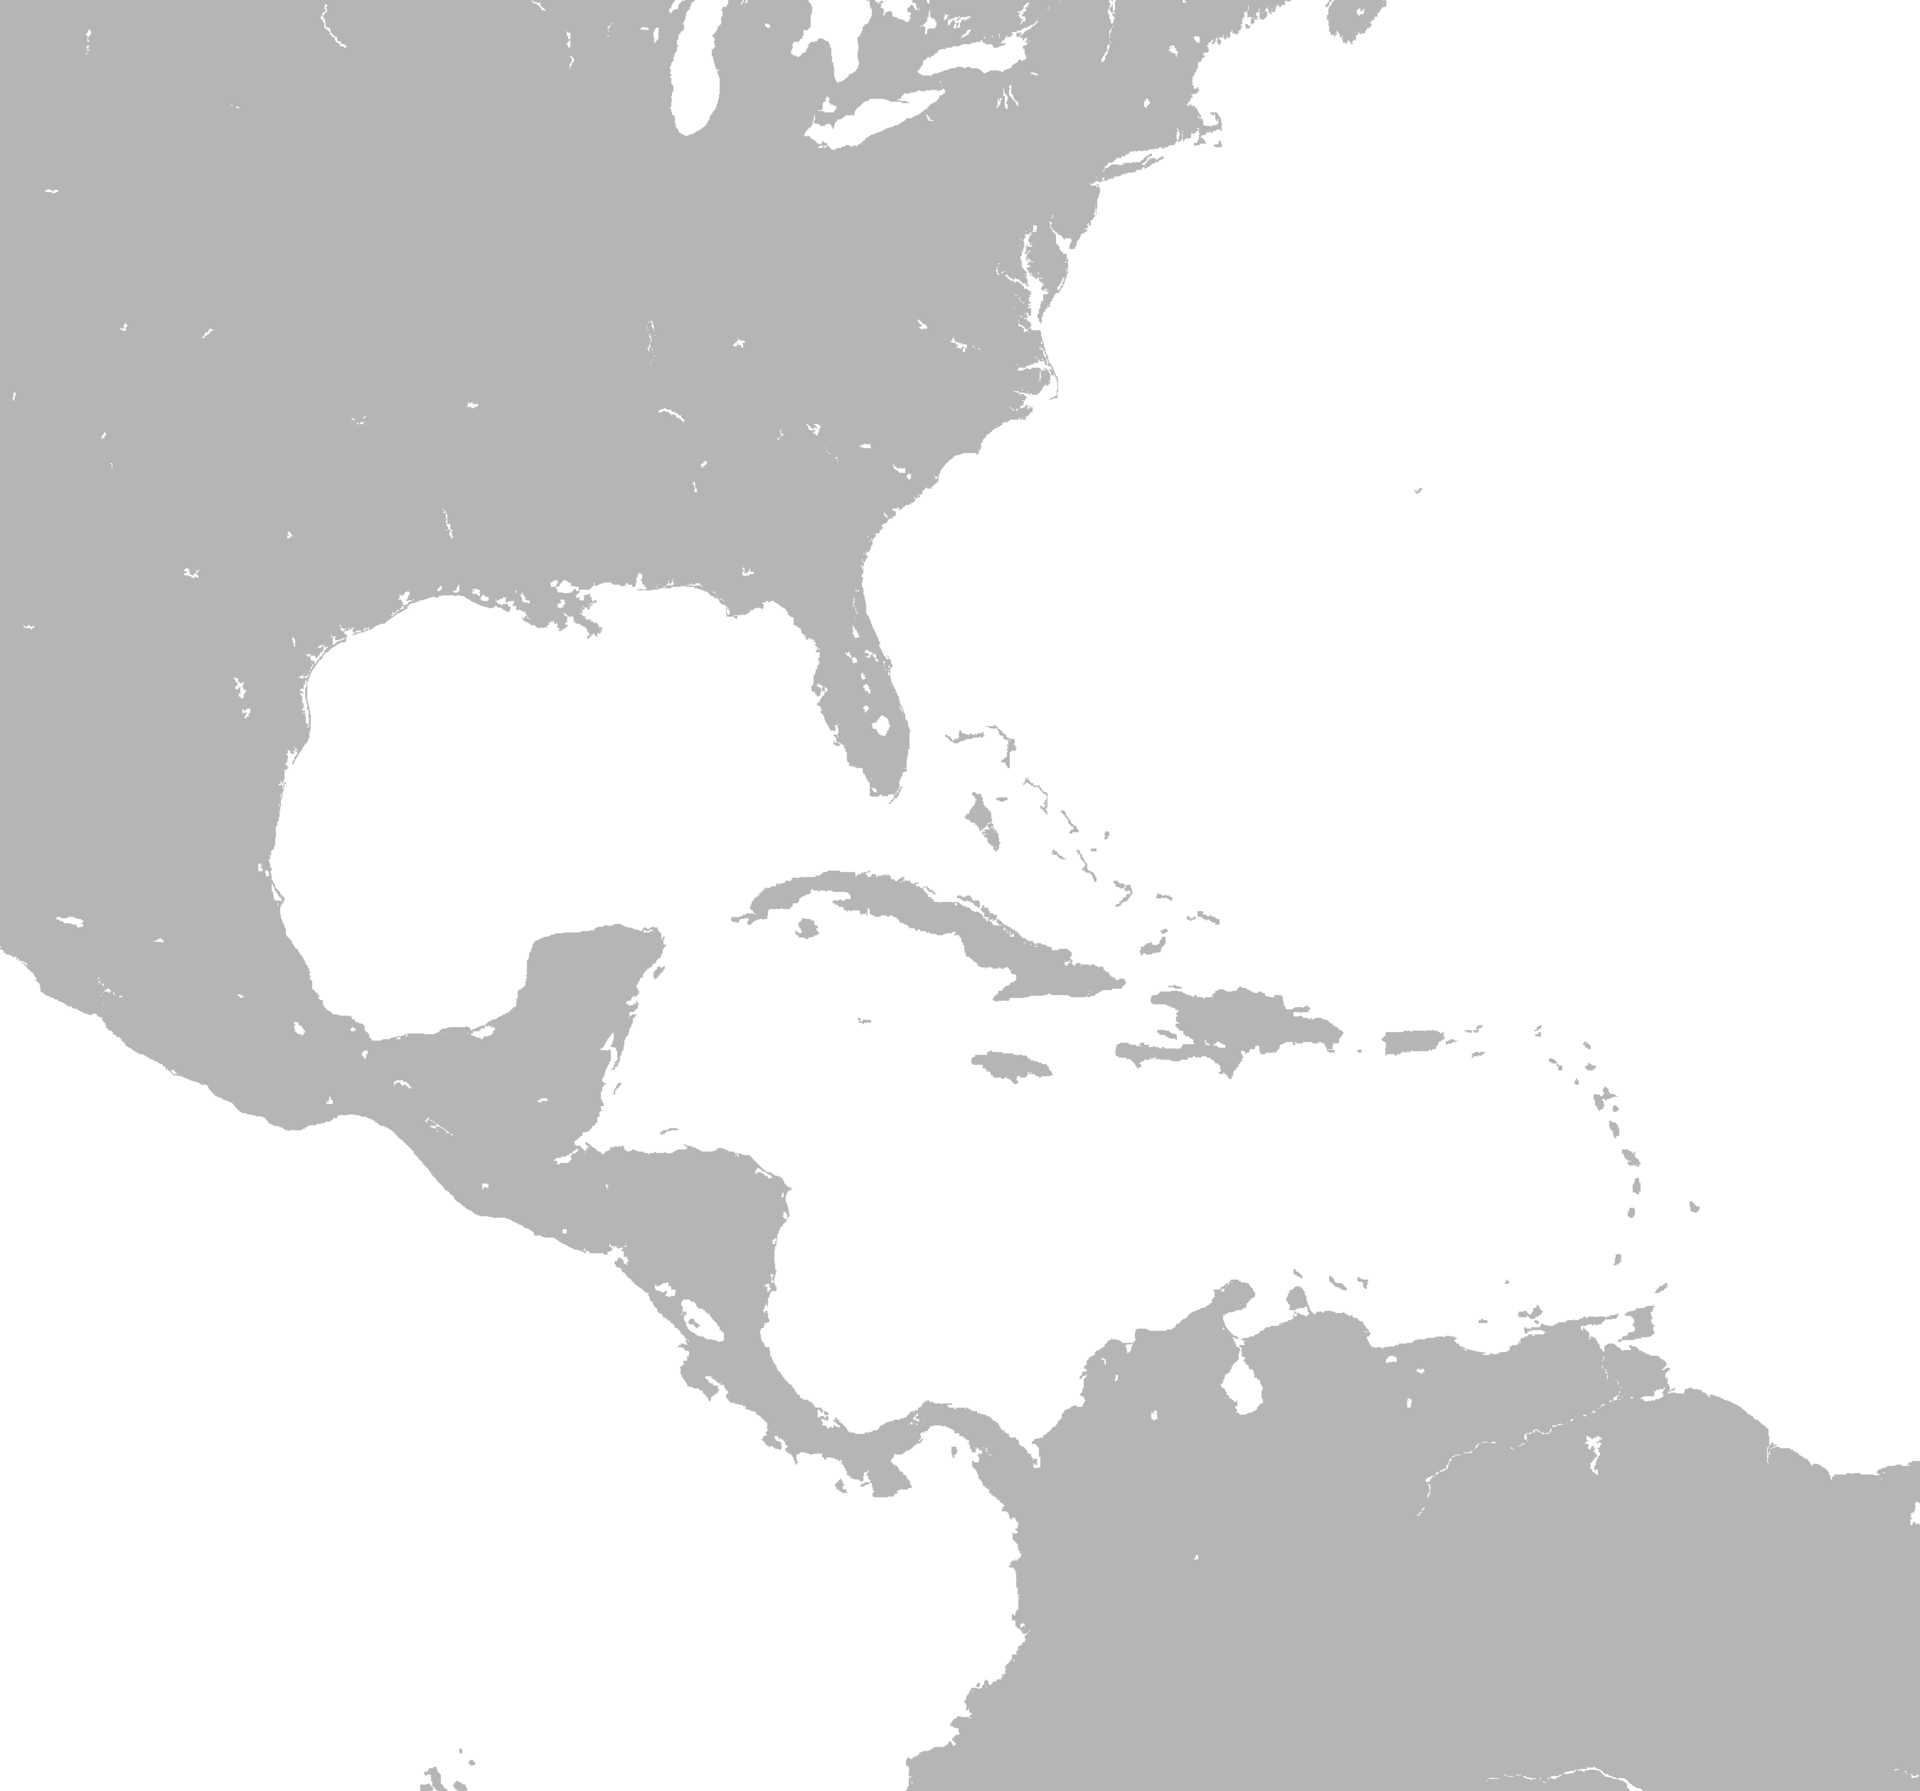 North America Outline Map Current Assignments Español - Central america and the caribbean islands map